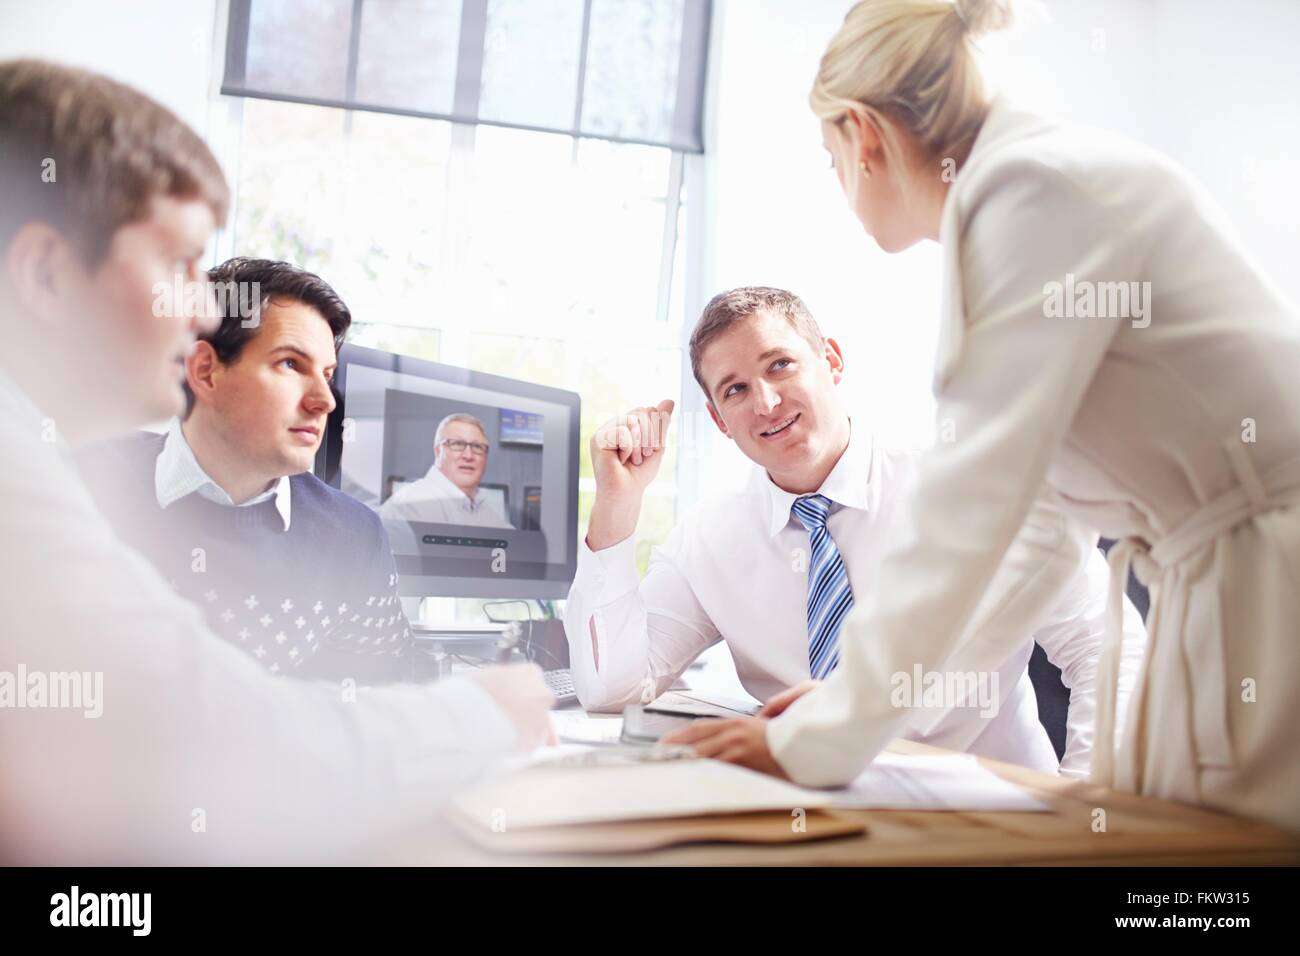 Colleagues in  fice at desk making video call, having discussion - Stock Image